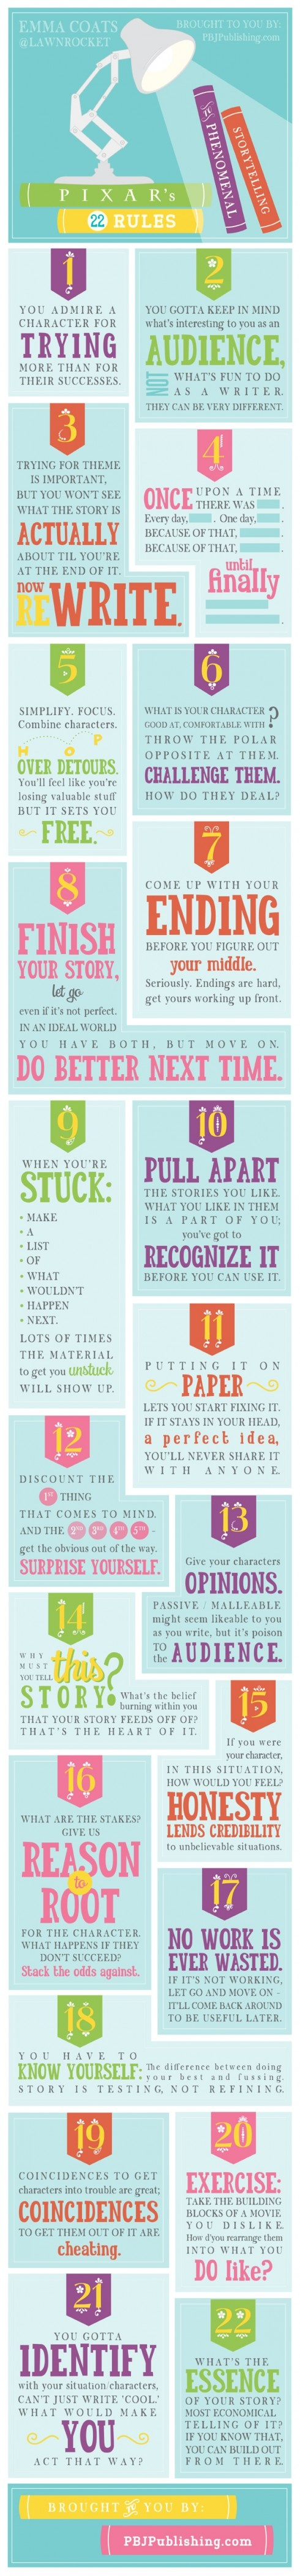 343 best School images on Pinterest   Gym, School and Teaching